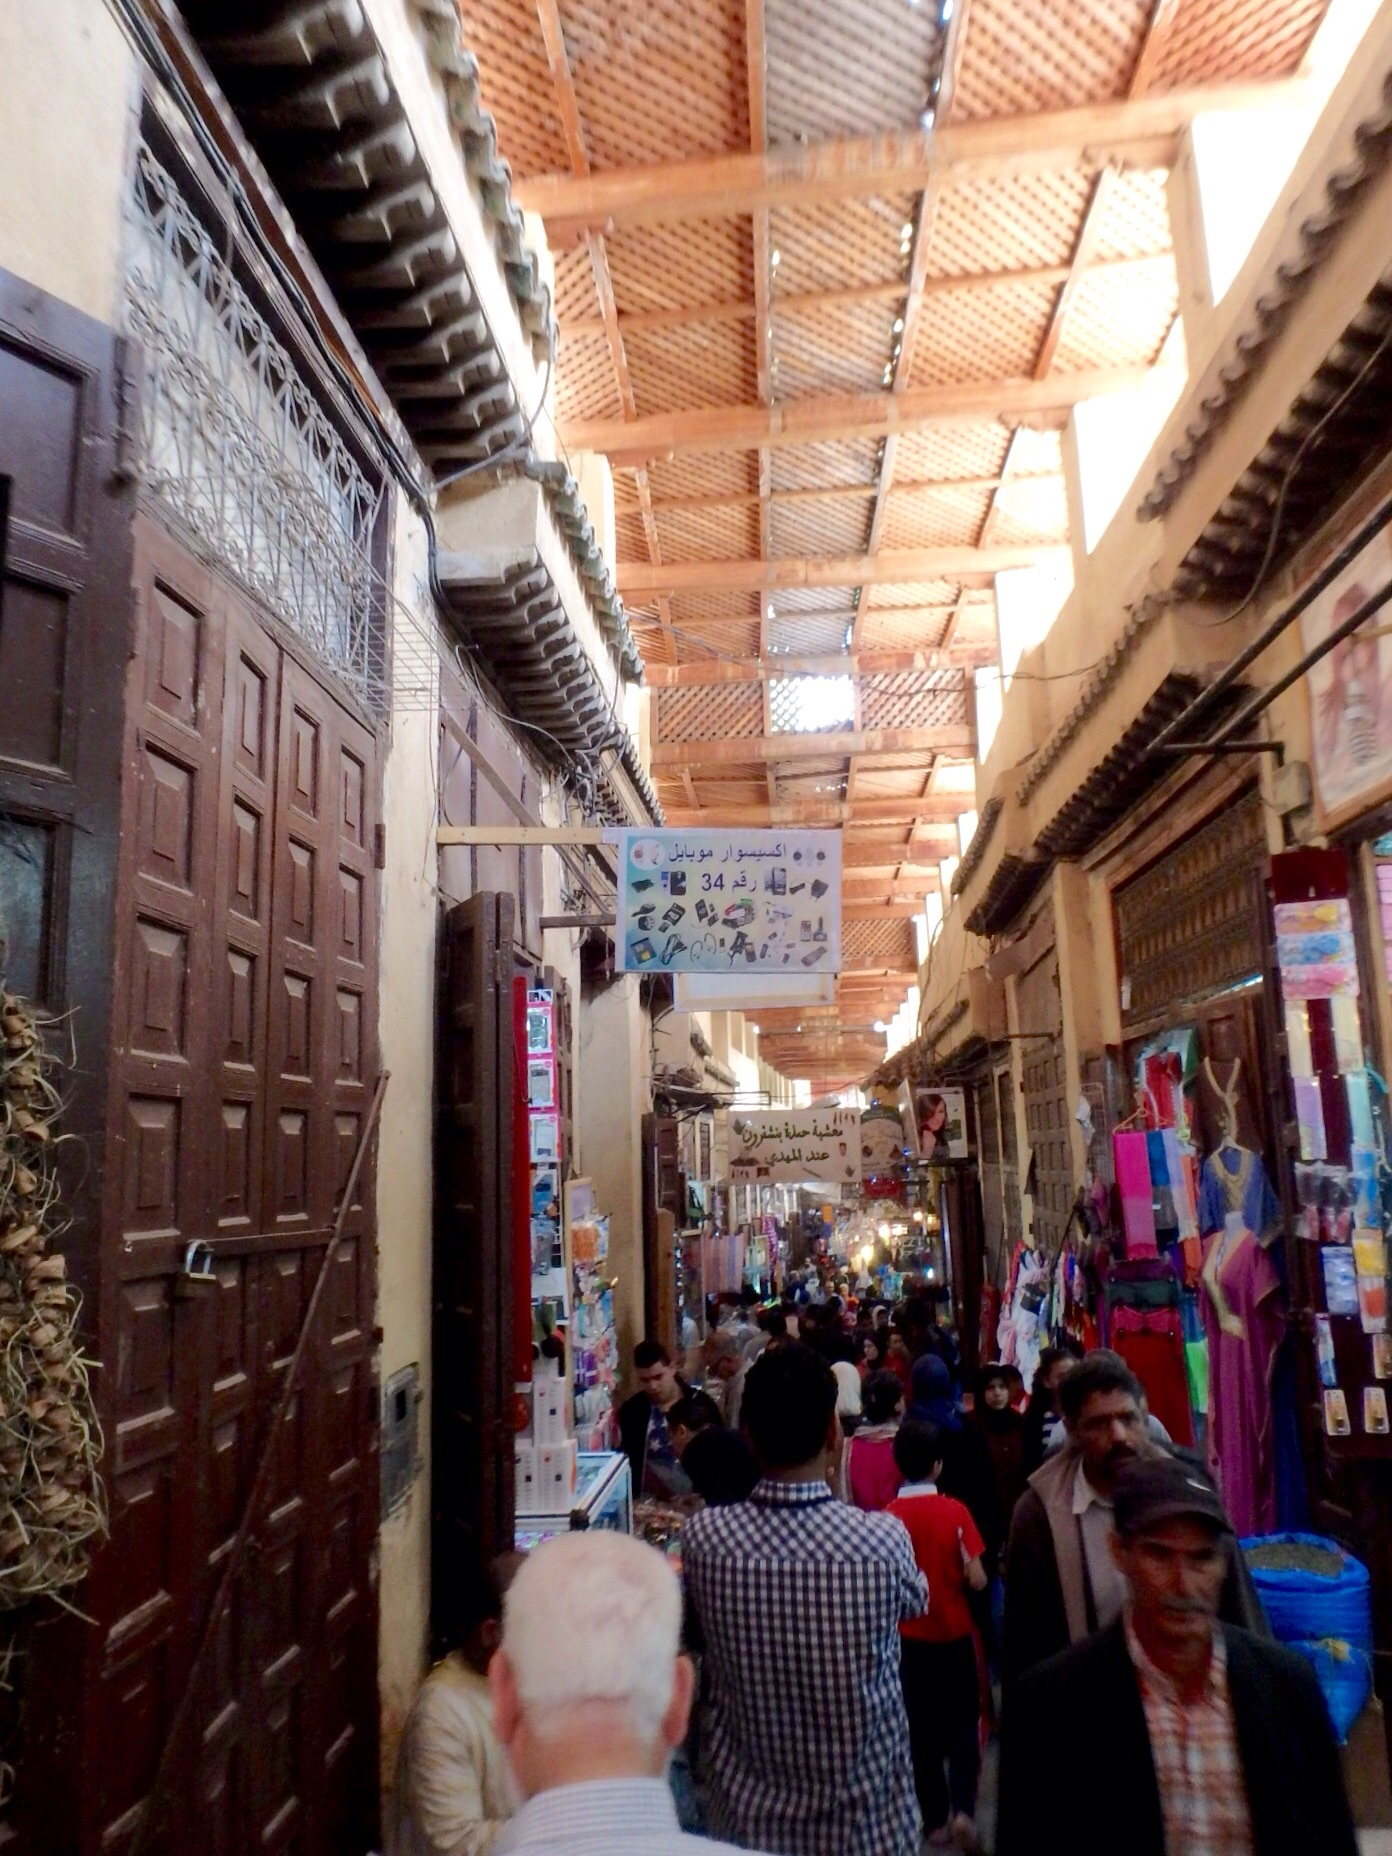 One of the wider alleys inside the medina.